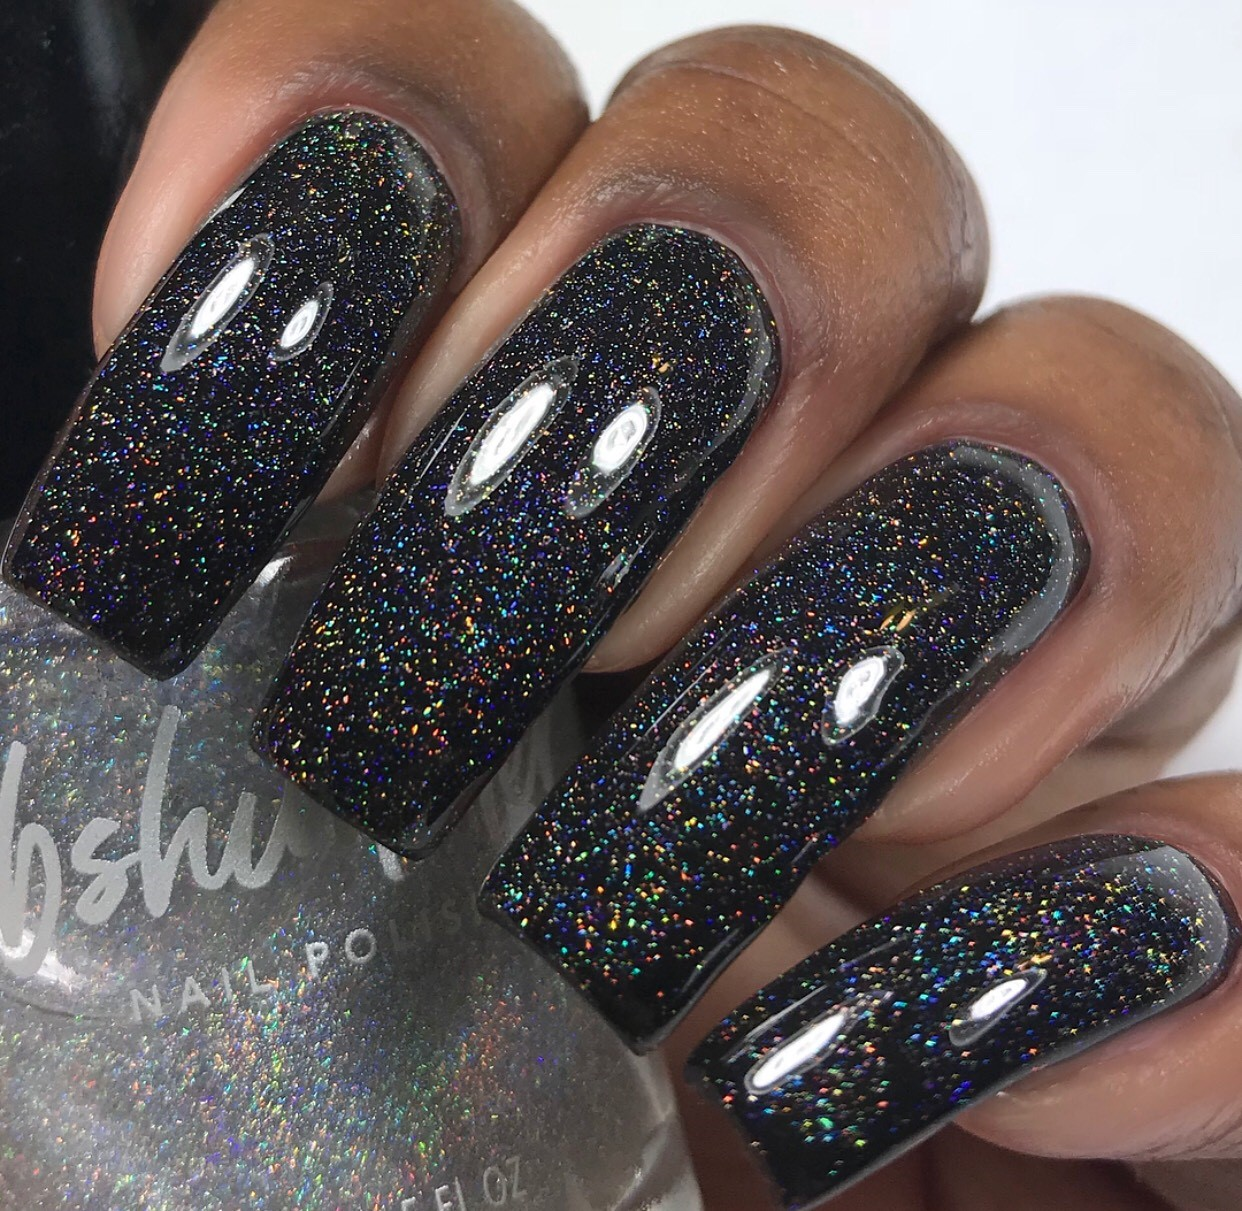 Nail Polish: KBShimmer A Star Is Formed Micro Holo Flake Glitter Topper